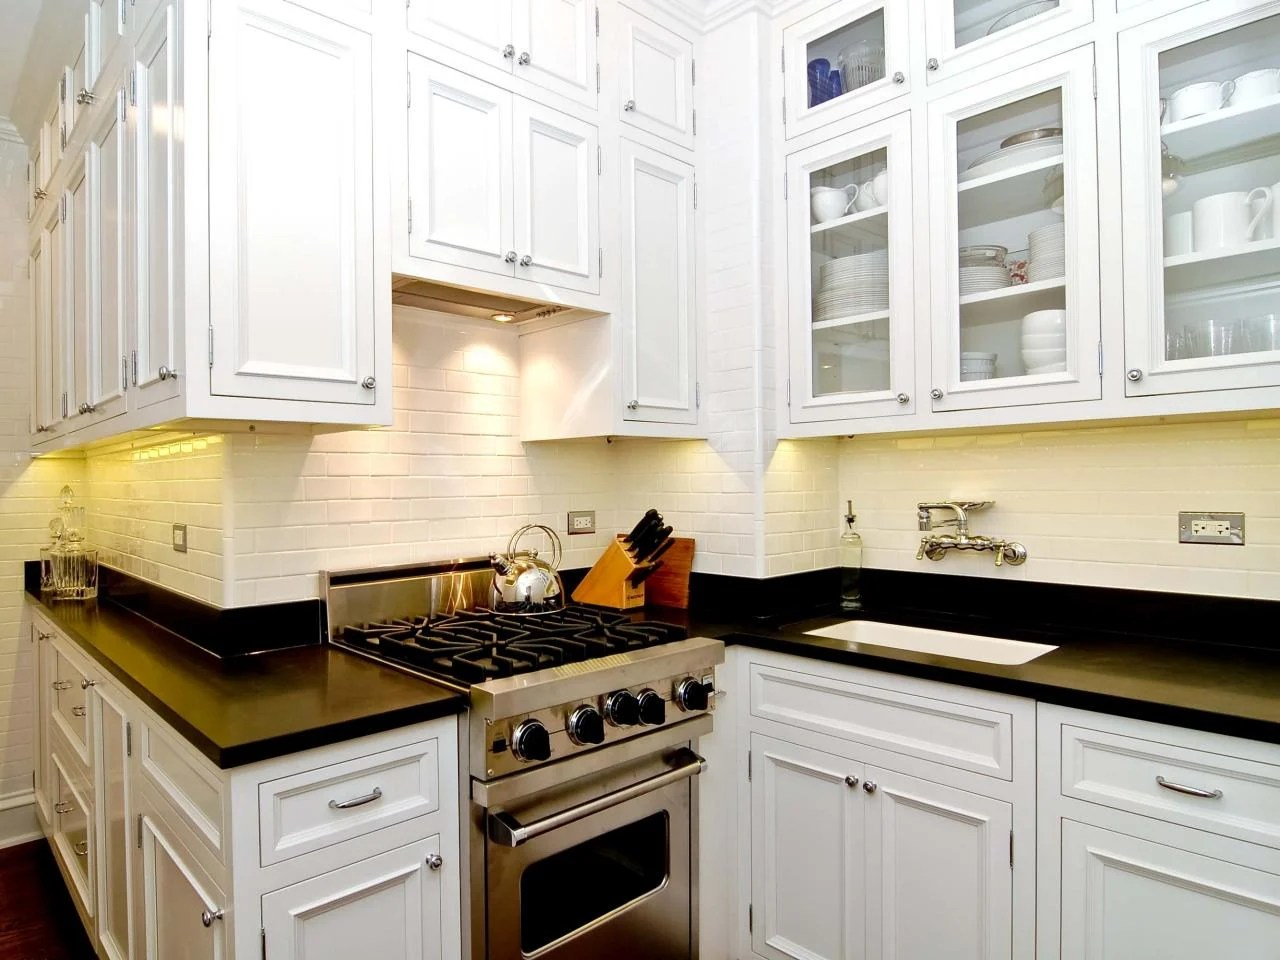 20 Kitchen Cabinets Designed For Small Spaces on Small Space Small Kitchen Ideas  id=31183